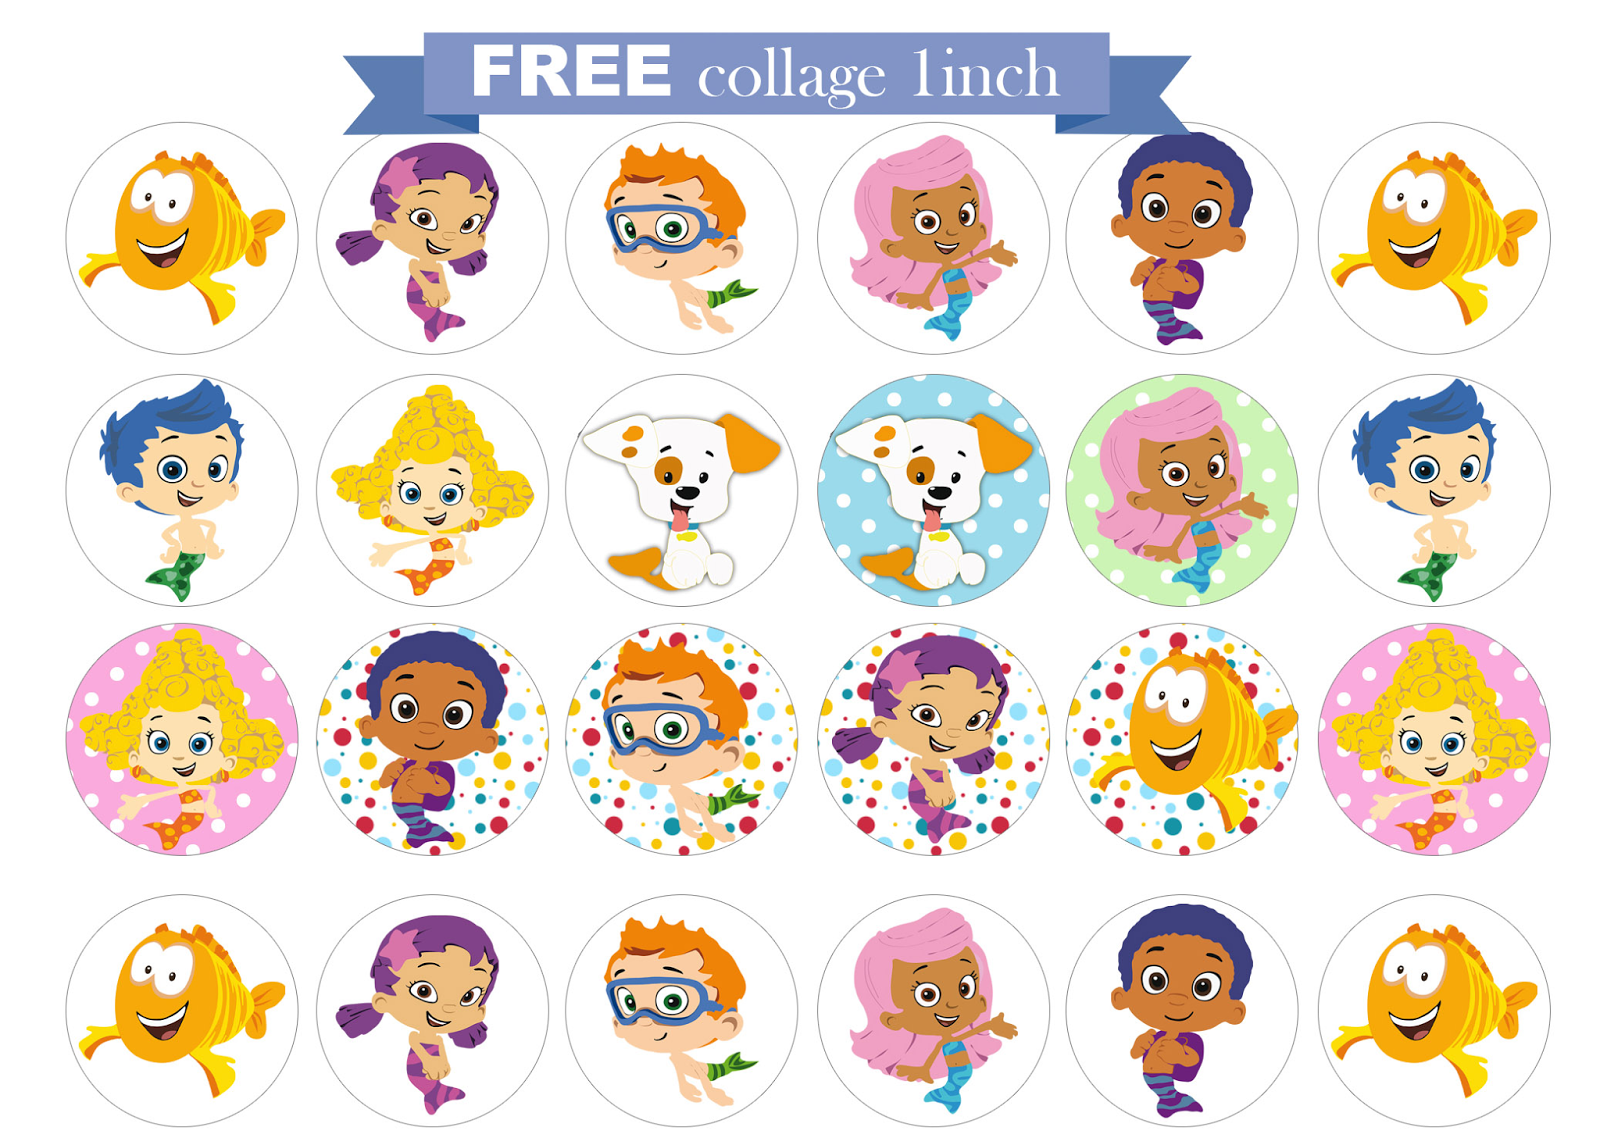 Free printable invitation bubble guppies free collage 1 inch - Bubble guppies birthday banner template ...